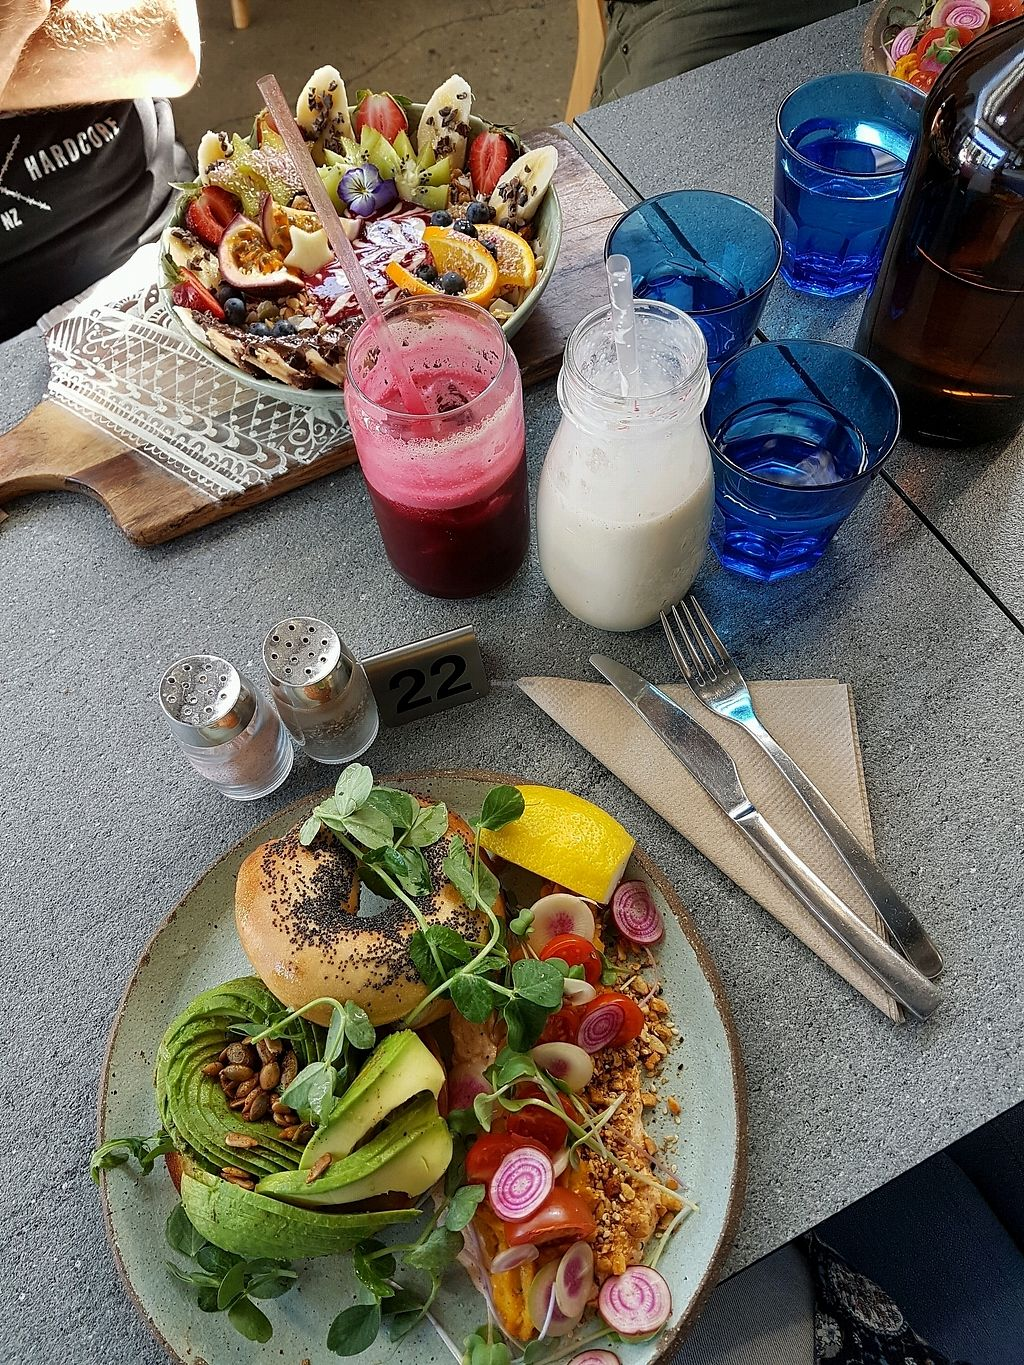 """Photo of The Cardamom Pod - The Brickworks Centre  by <a href=""""/members/profile/katiebarriball"""">katiebarriball</a> <br/>Avo-Bagel & PB Smoothie Bowl <br/> September 23, 2017  - <a href='/contact/abuse/image/28442/307552'>Report</a>"""